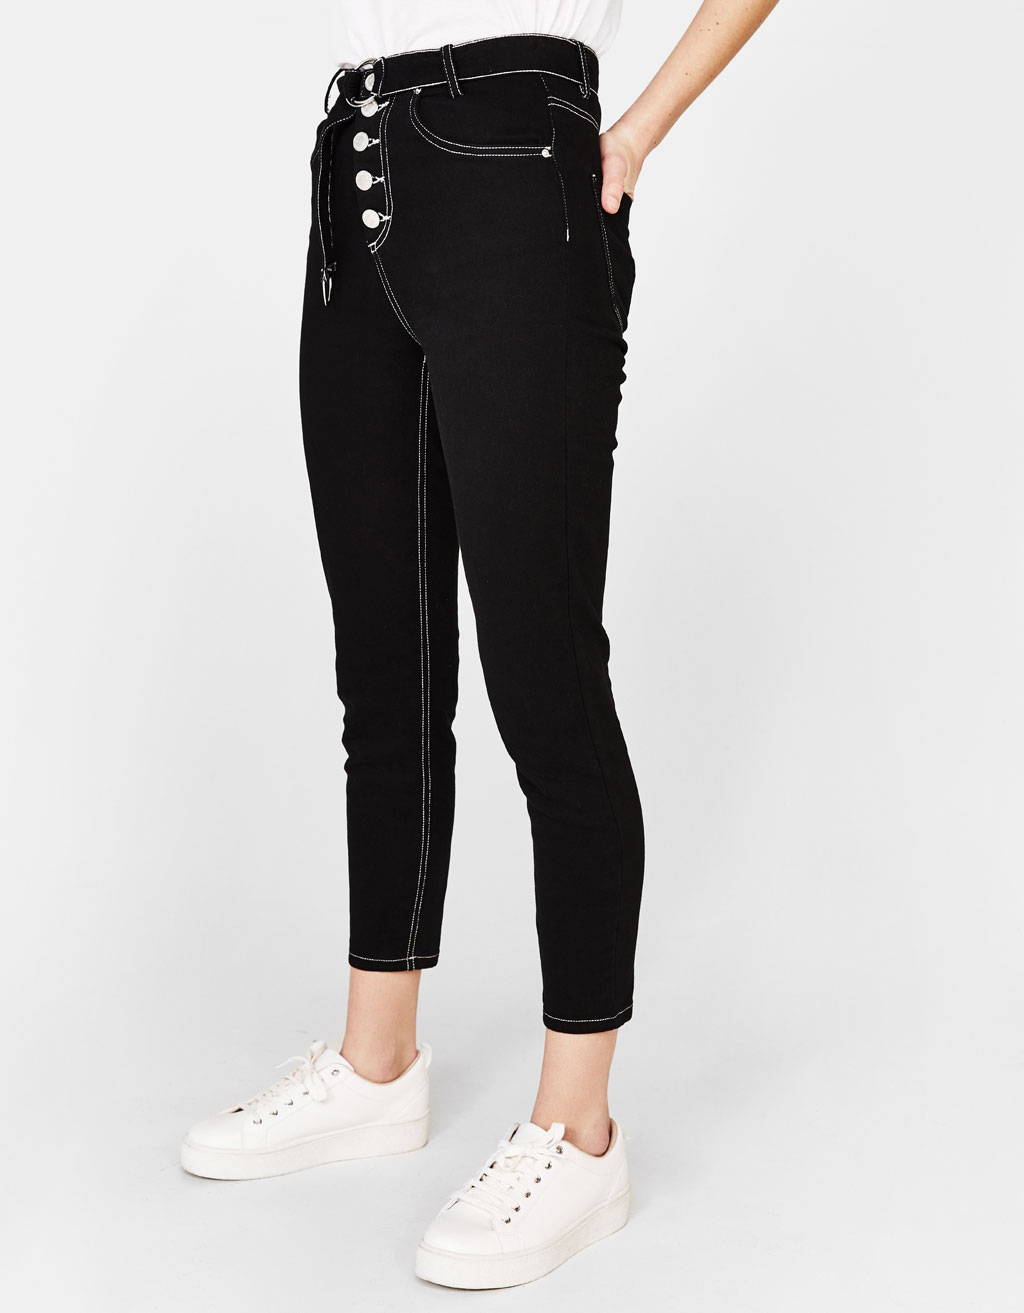 High-rise pants with contrasting seams